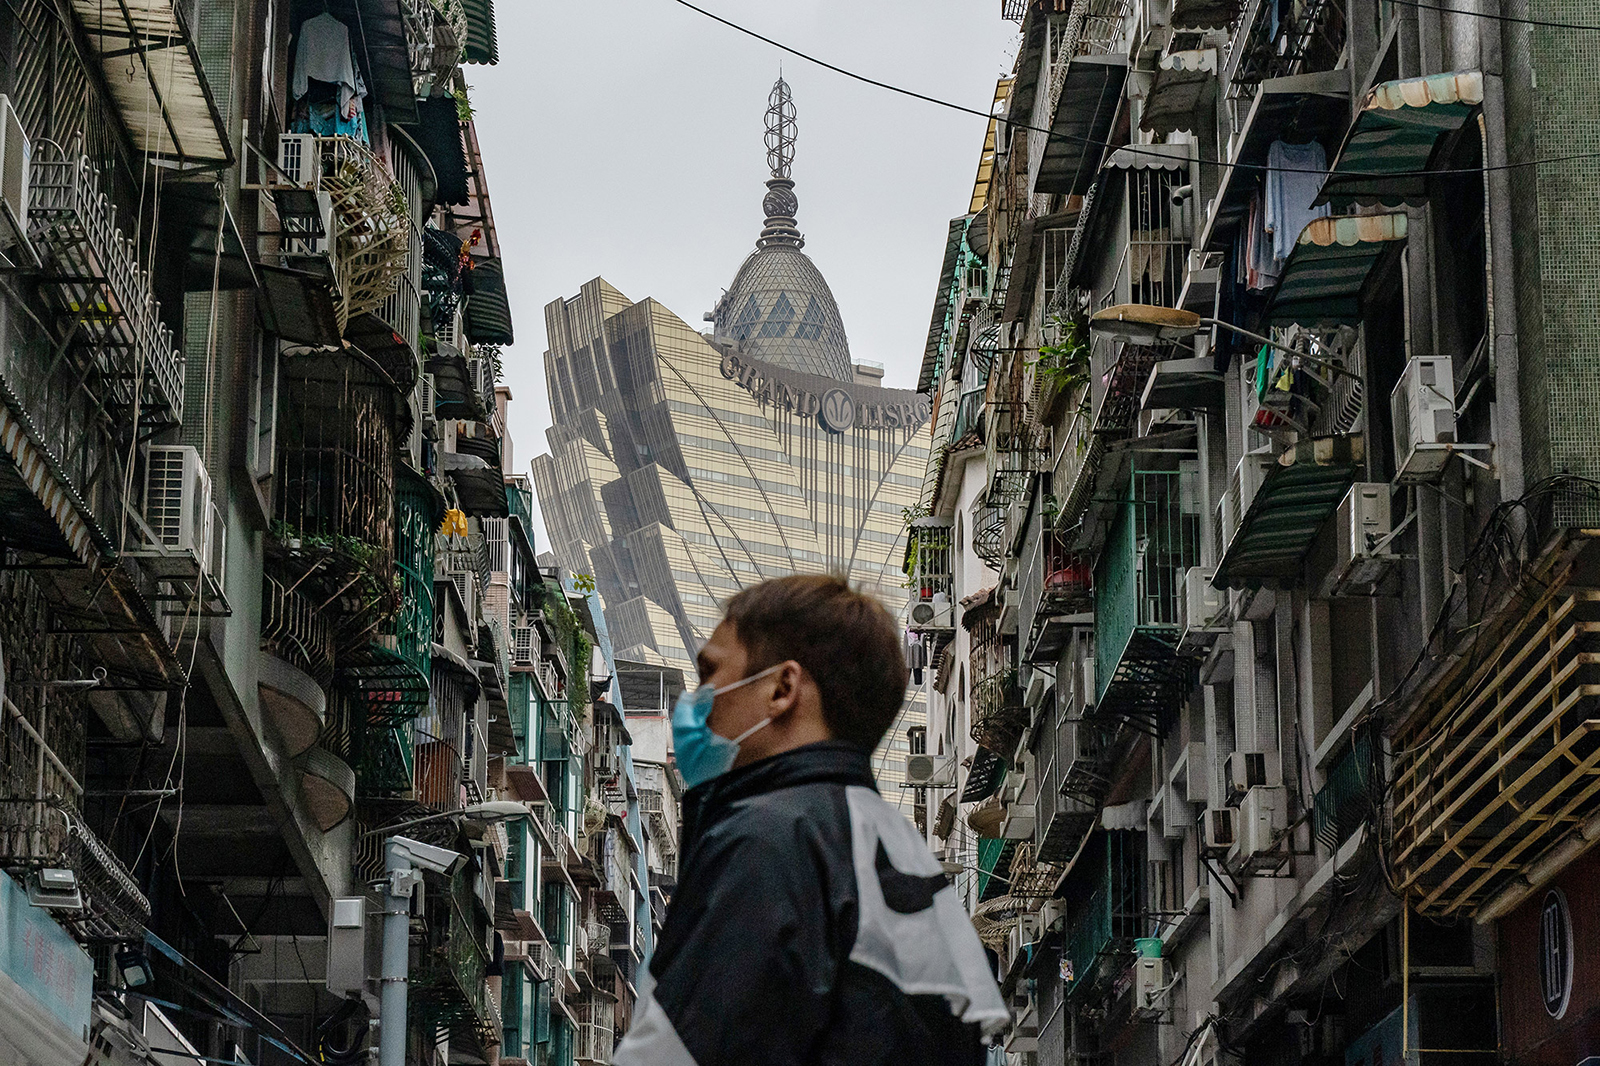 A man wearing a protective mask walks across a street in front of the Grand Lisboa Hotel in a residential district on February 5 in Macau.